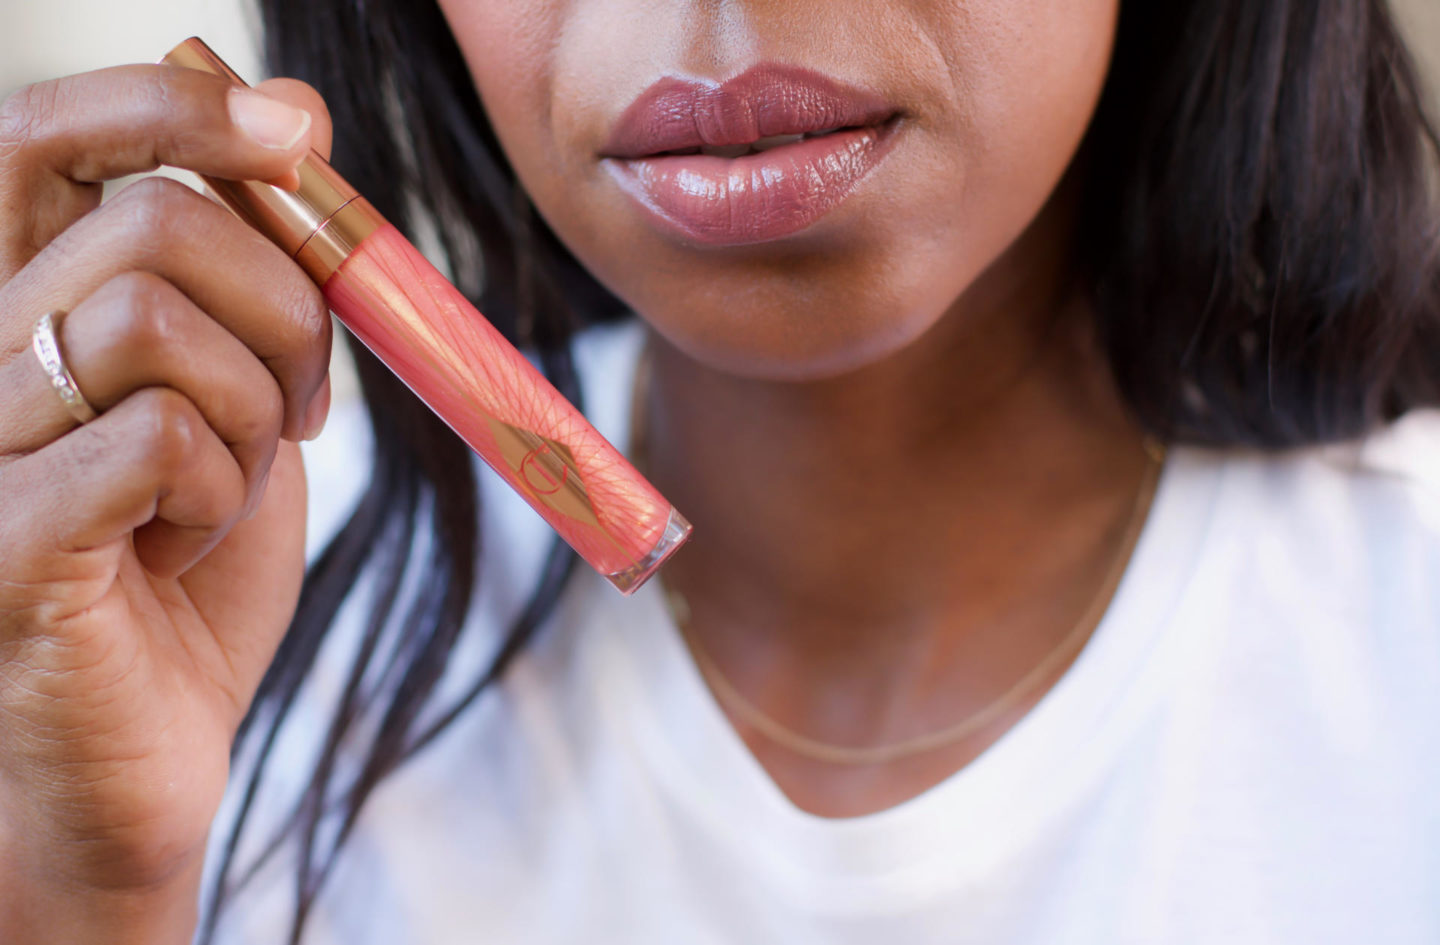 Dominique Baker wearing Charlotte Tilbury Collagen Lip Bath in Peachy Plump